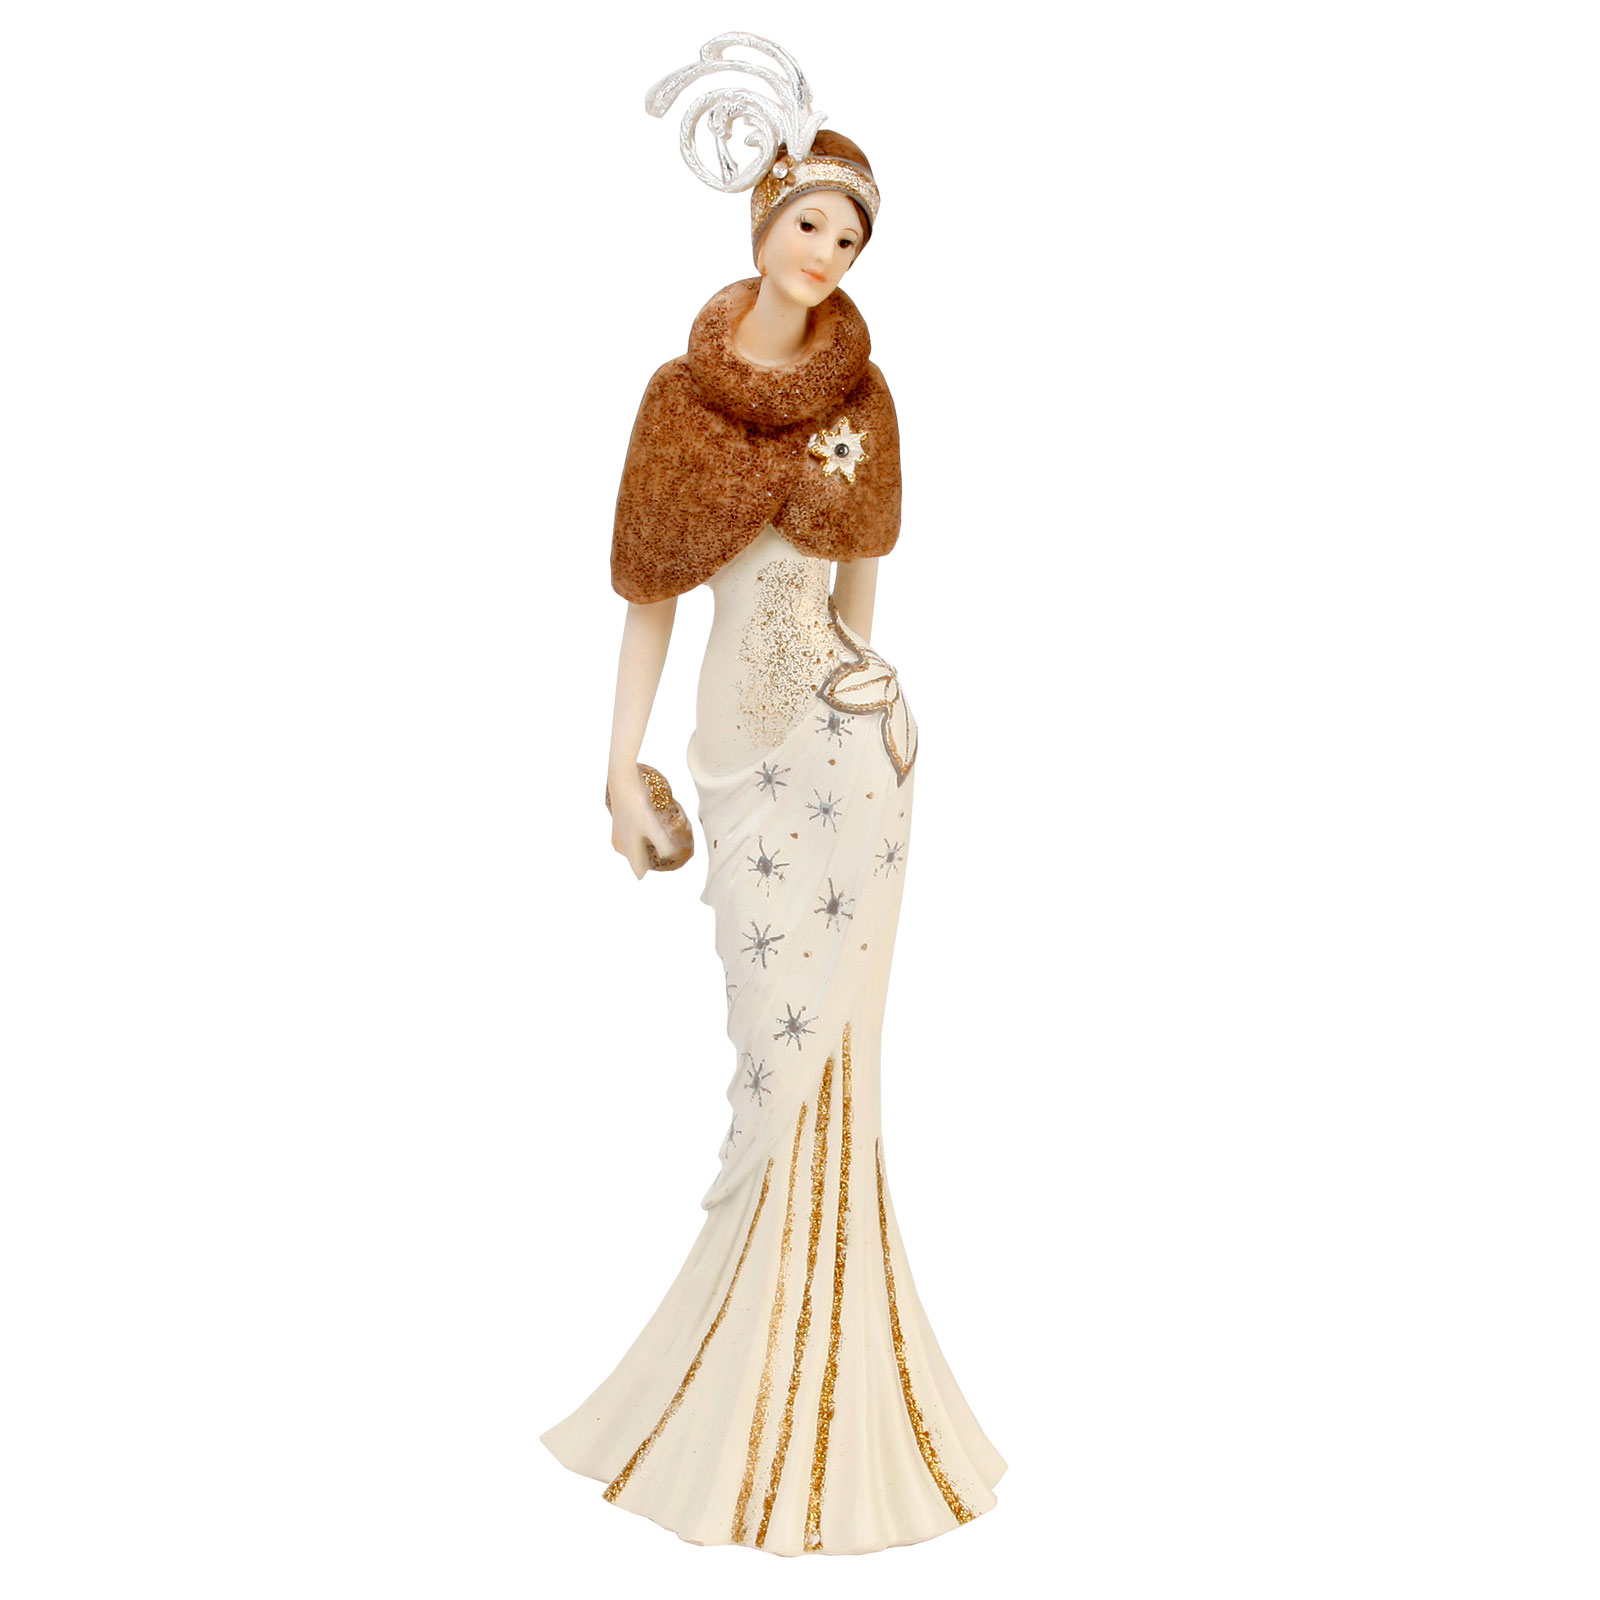 juliana art deco chicago style evening model lady figurine gift ornament statue ebay. Black Bedroom Furniture Sets. Home Design Ideas